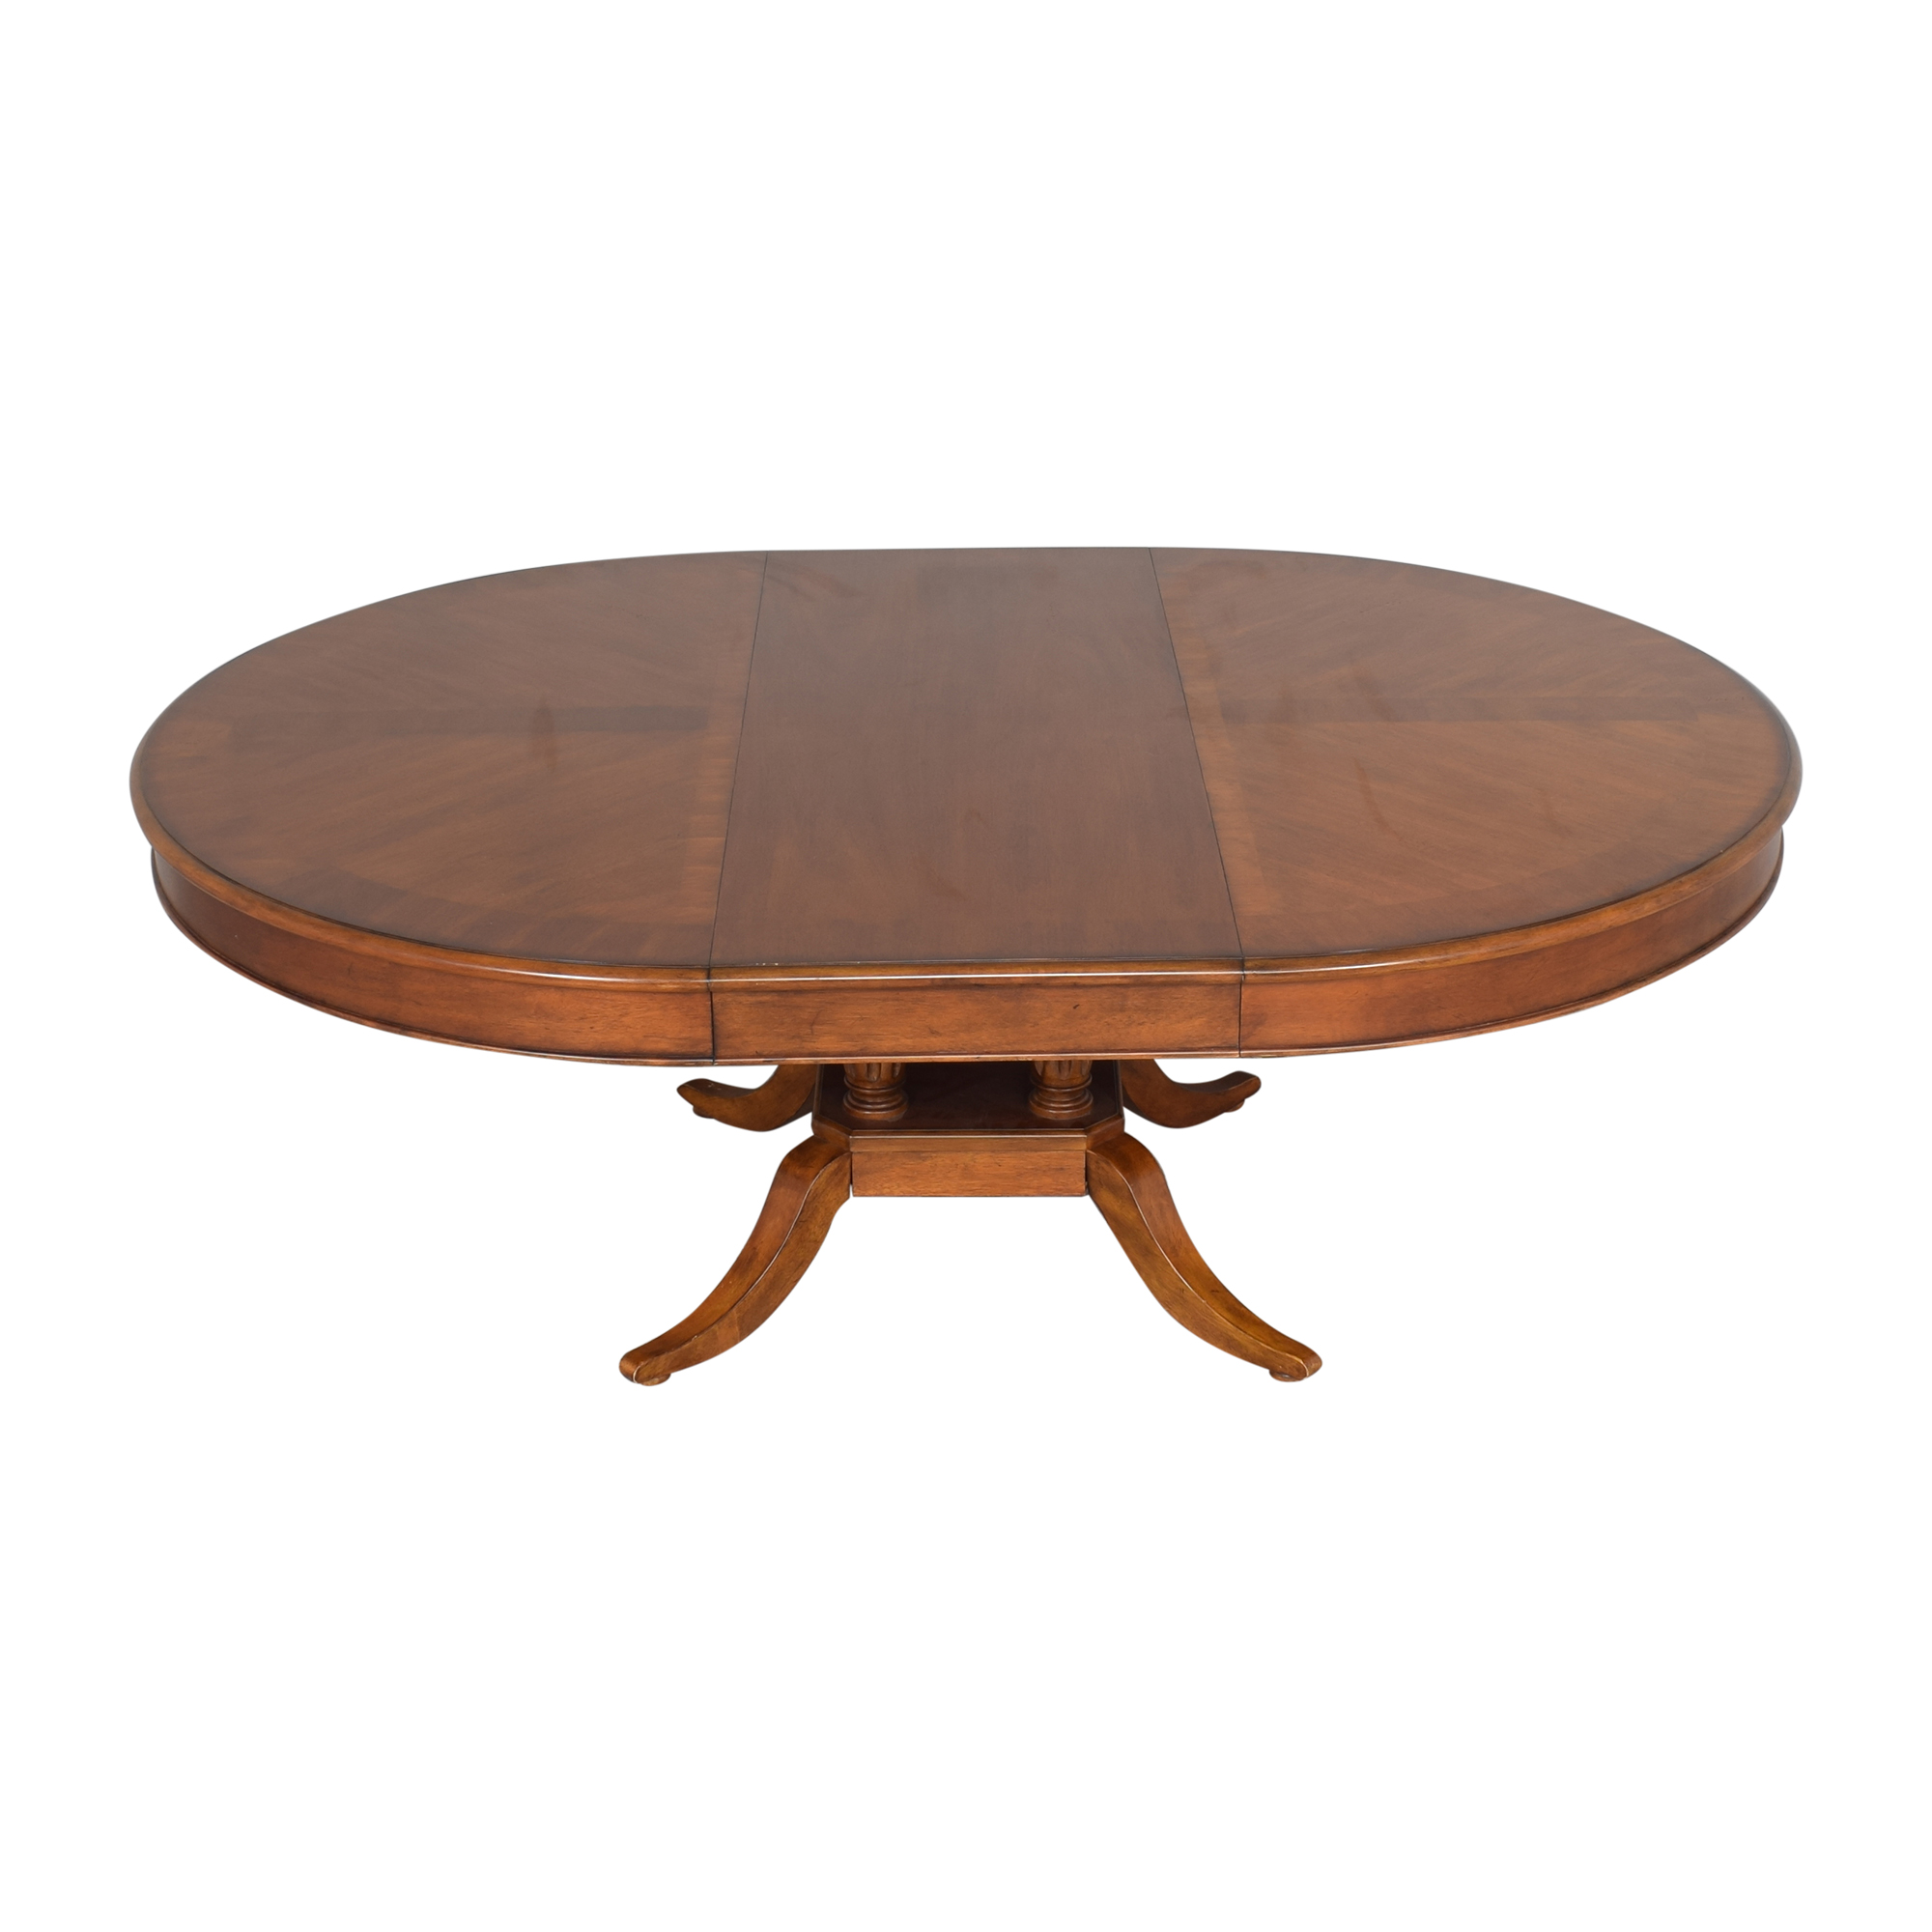 Bassett Mirror Company Bassett Mirror Company Extendable Dining Table second hand